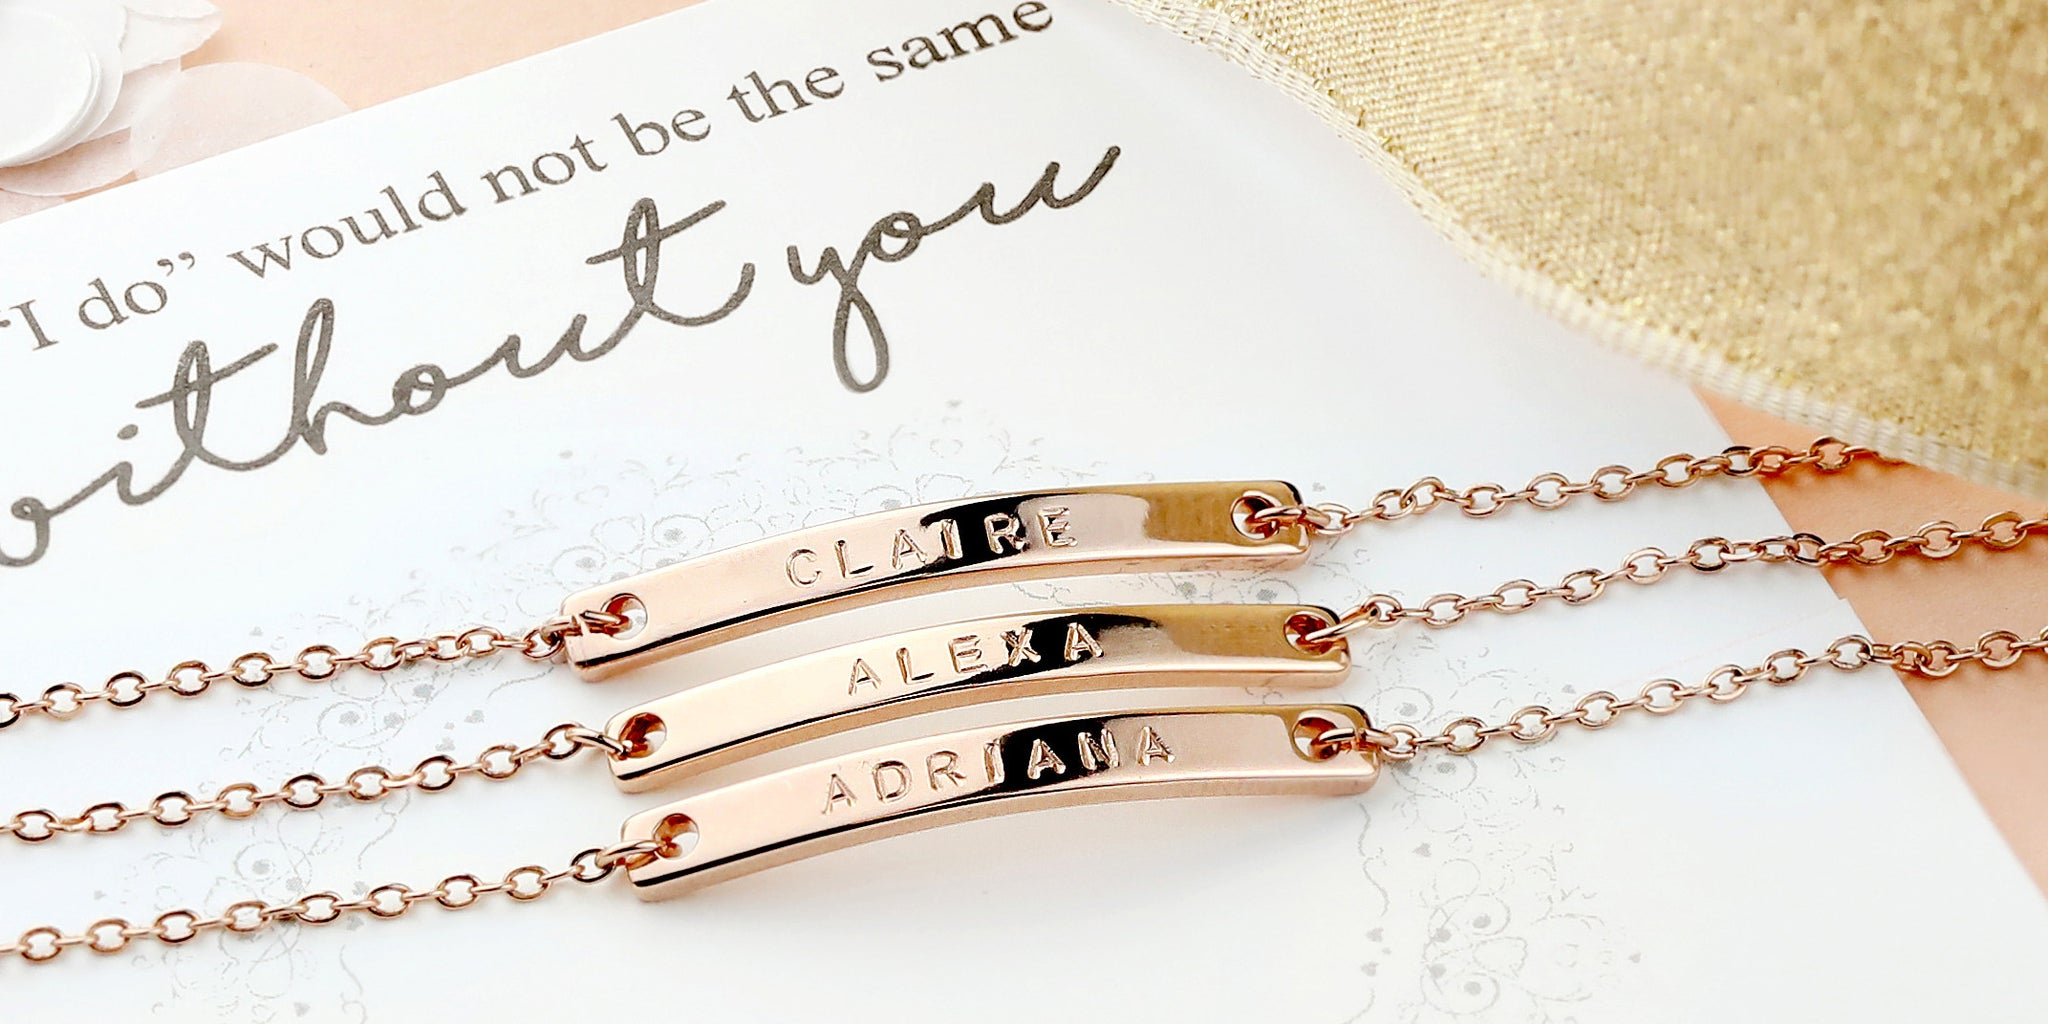 Will You Be My Bridesmaid Proposal Gift Bridesmaid Gift Box Monogram Bracelet Personalized Bracelet Bridesmaid Jewelry Bridesmaid Gift Set